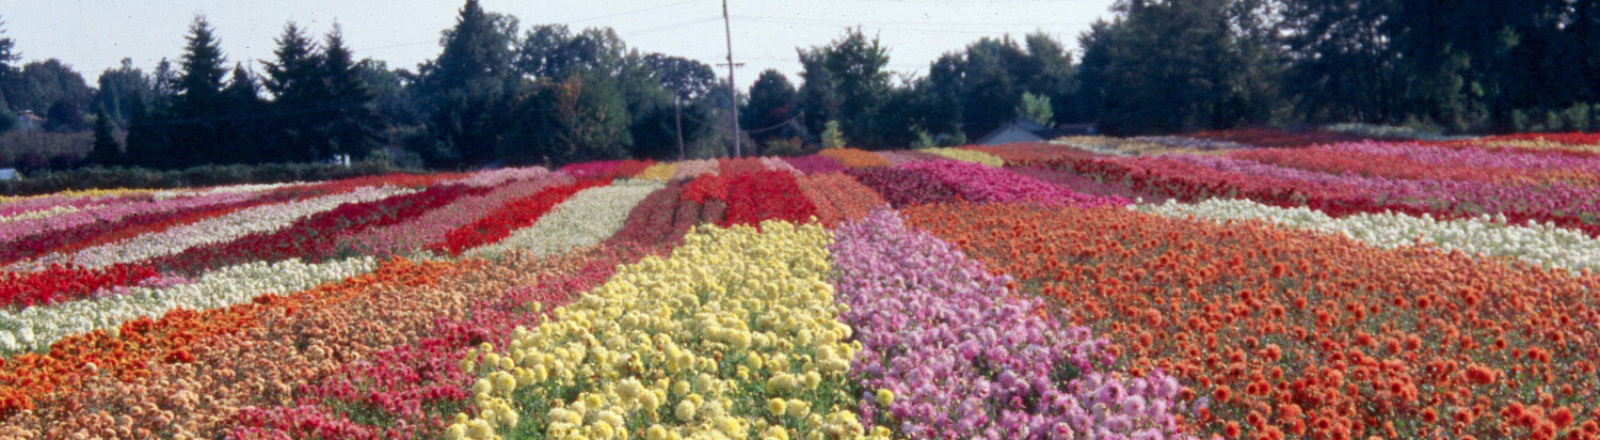 Field at Canby's Swan Island Dahlias filled with thousands of blooms in a multitude of colors in early fall